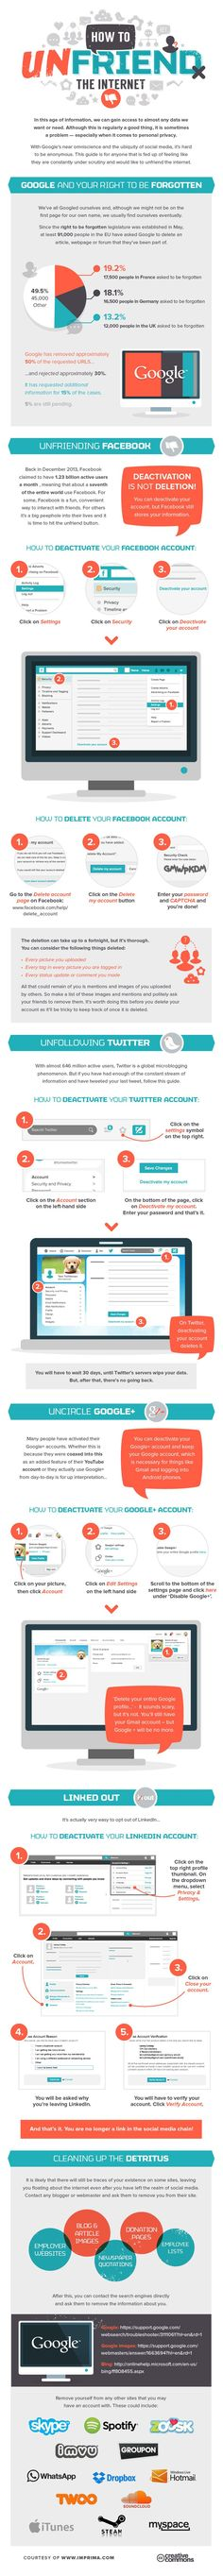 This #Infographic Shows How to Completely Erase Your Identity From the Internet - Facebook, LinkedIn, Google+ etc. #socialmedia #Infografía